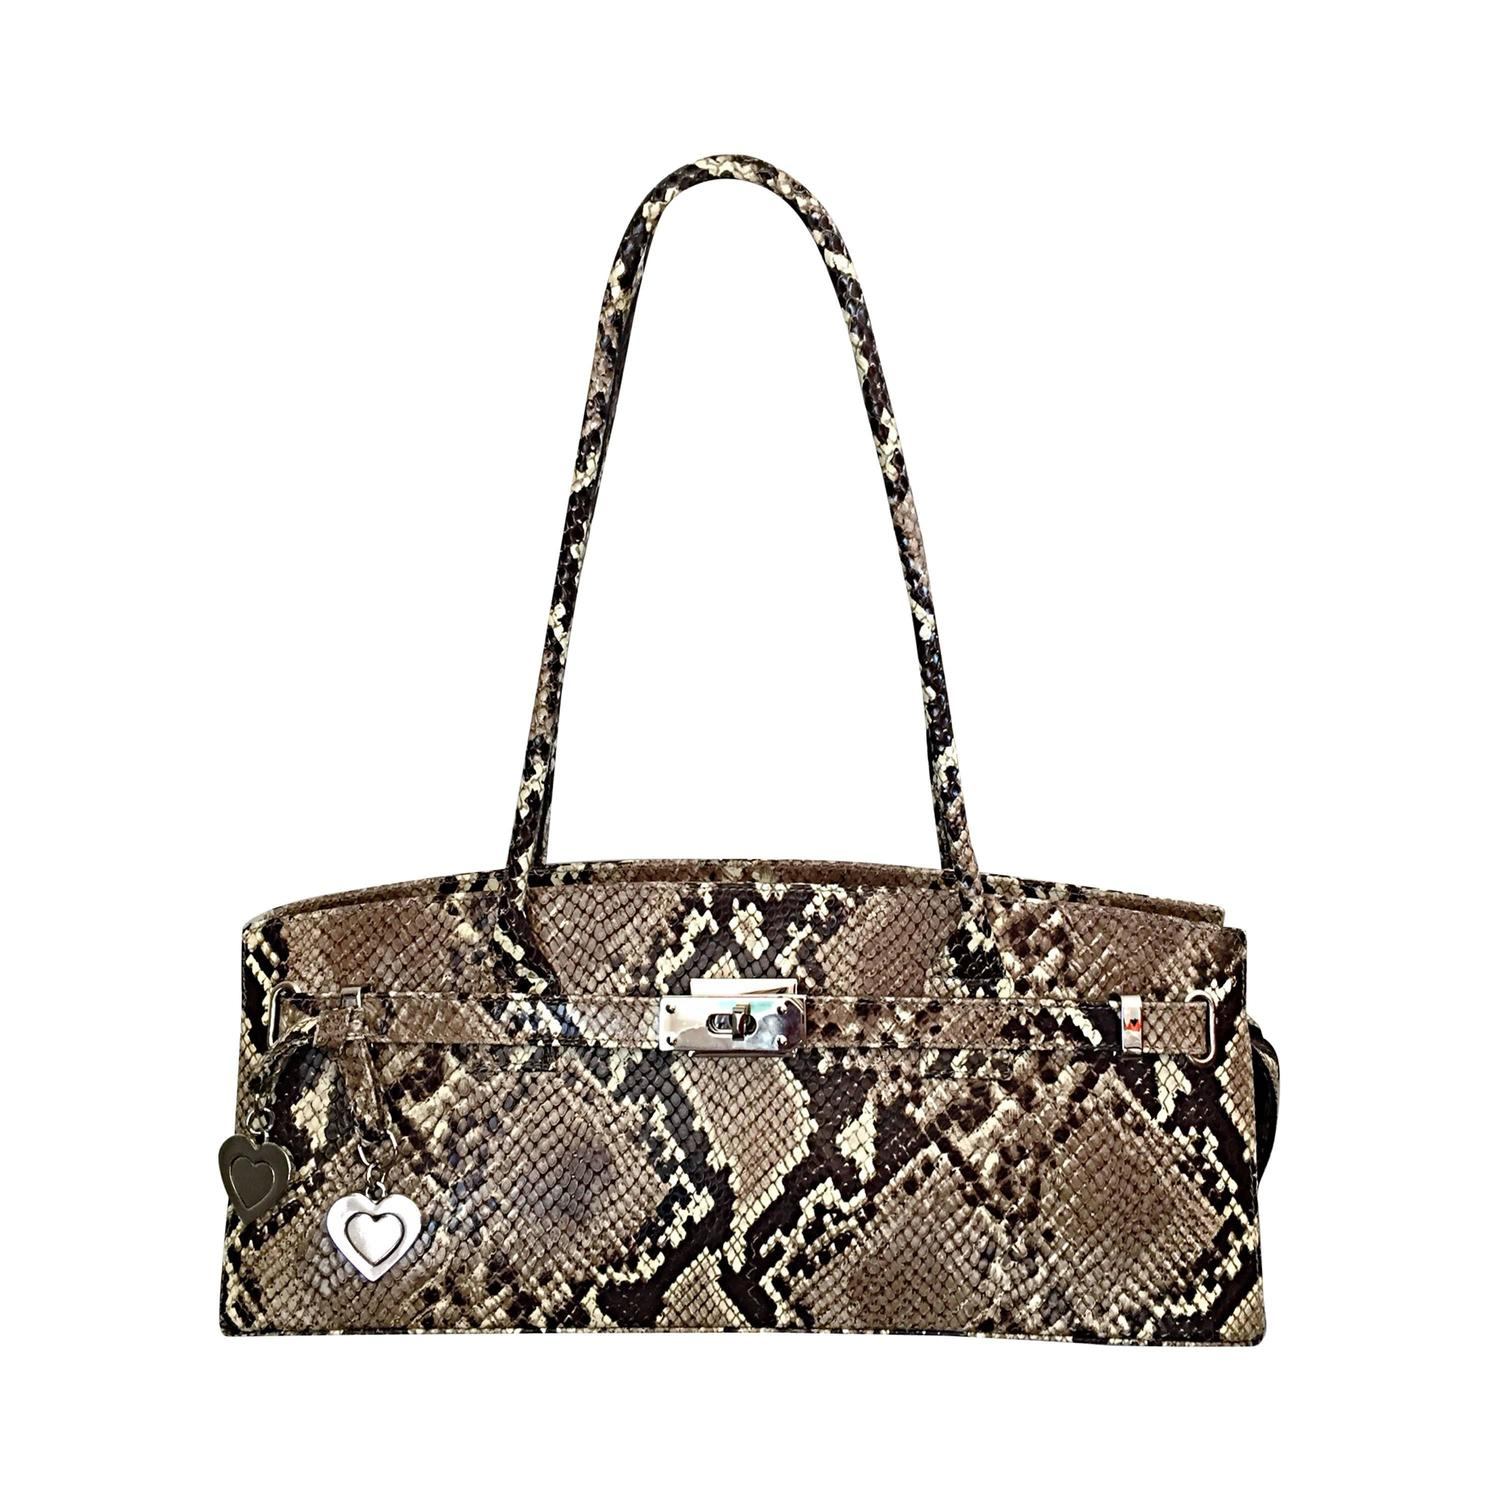 Find great deals on eBay for snakeskin purse. Shop with confidence.